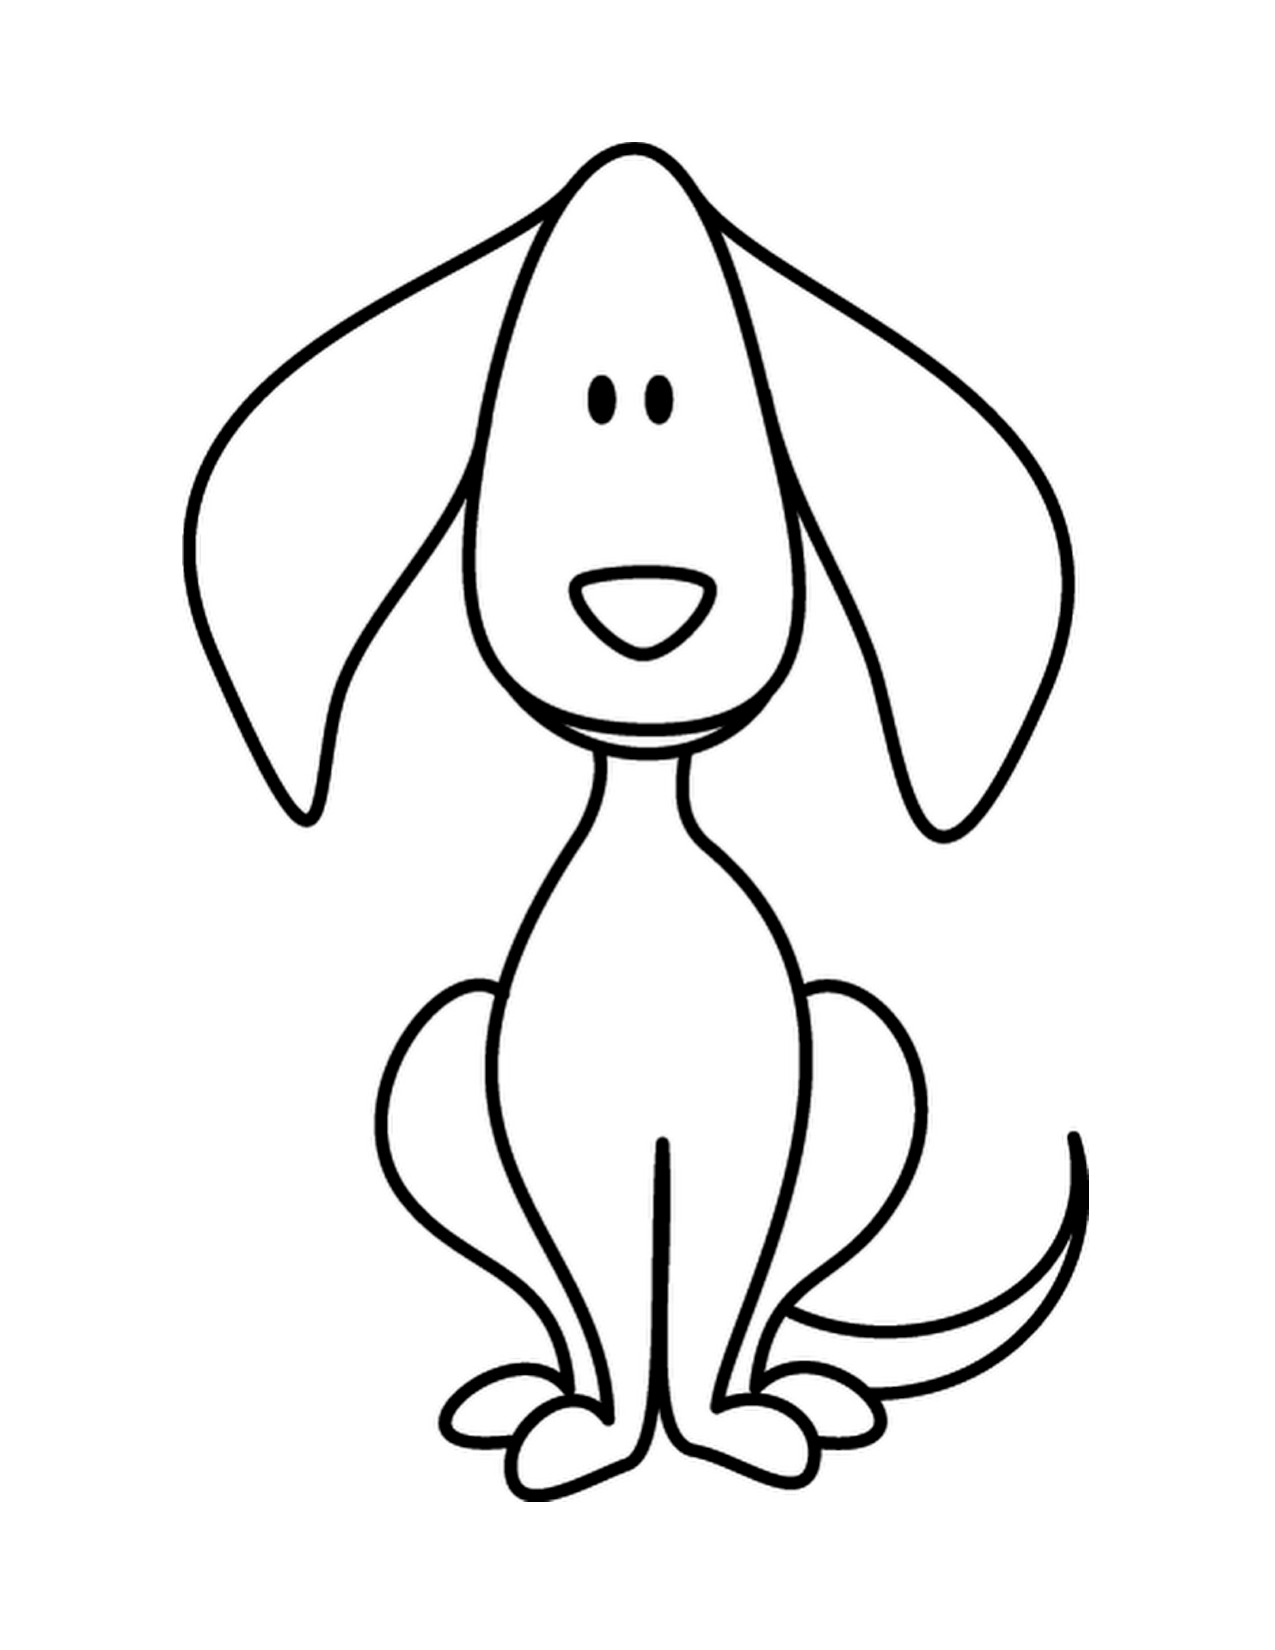 Puppy Dog Doodle Coloring Page.